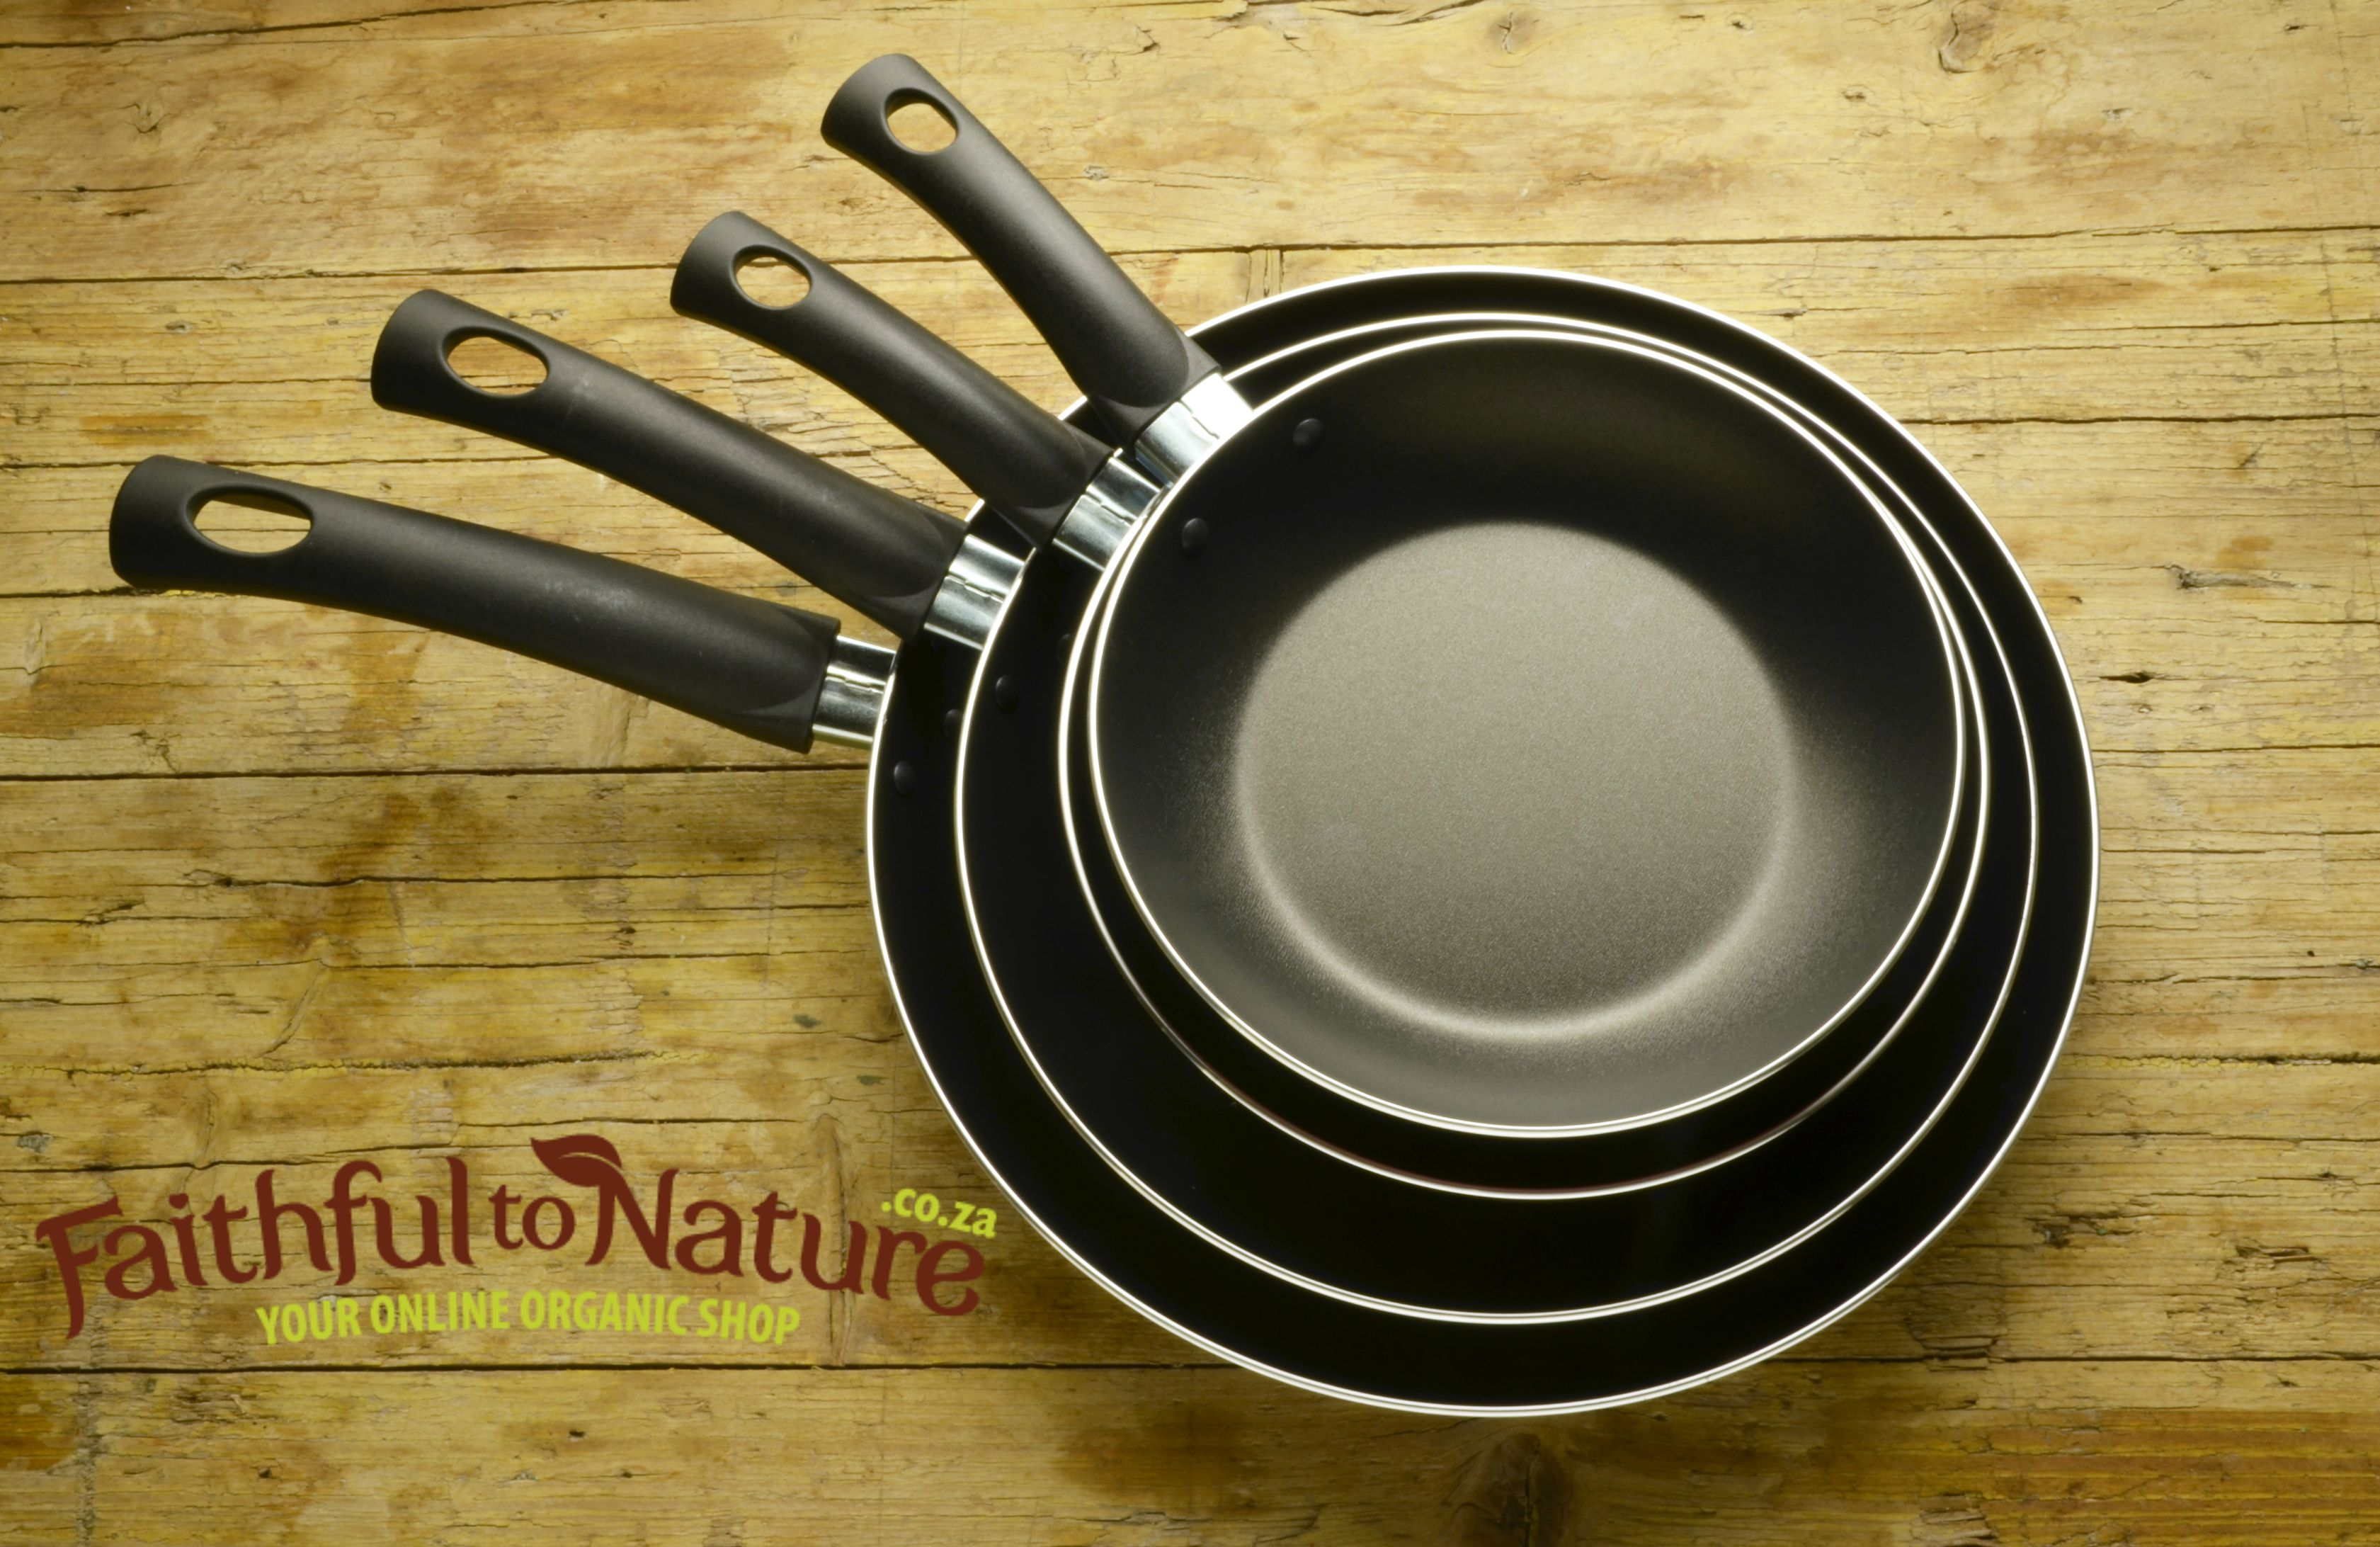 Healthy Cookware